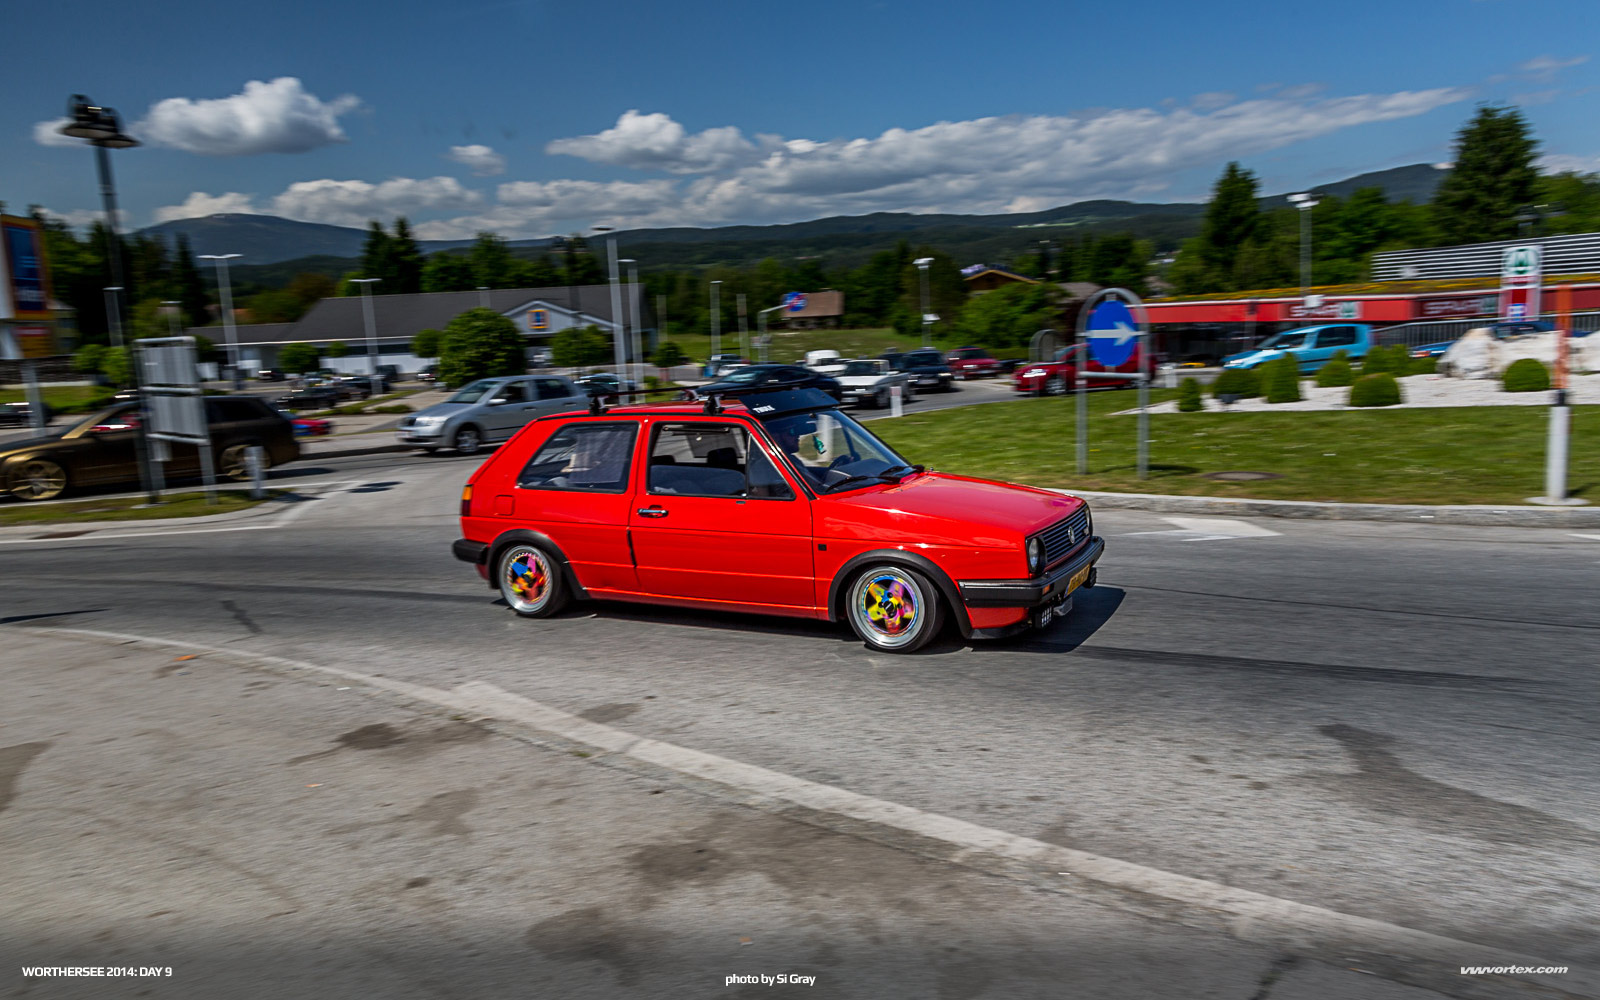 2014-Worthersee-Day-9-Si-Gray-400